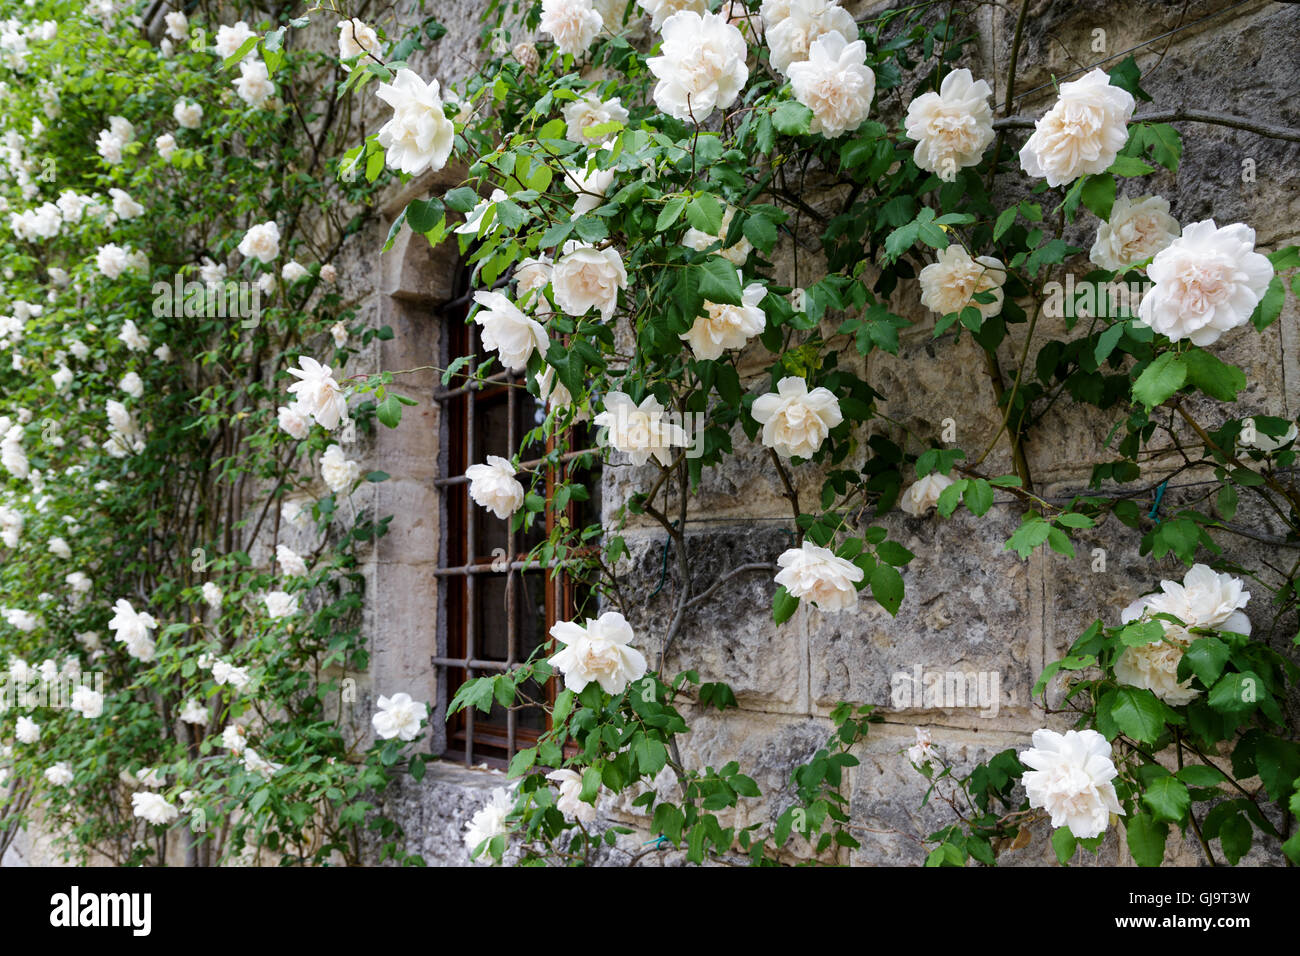 White rambling rose around window - Stock Image